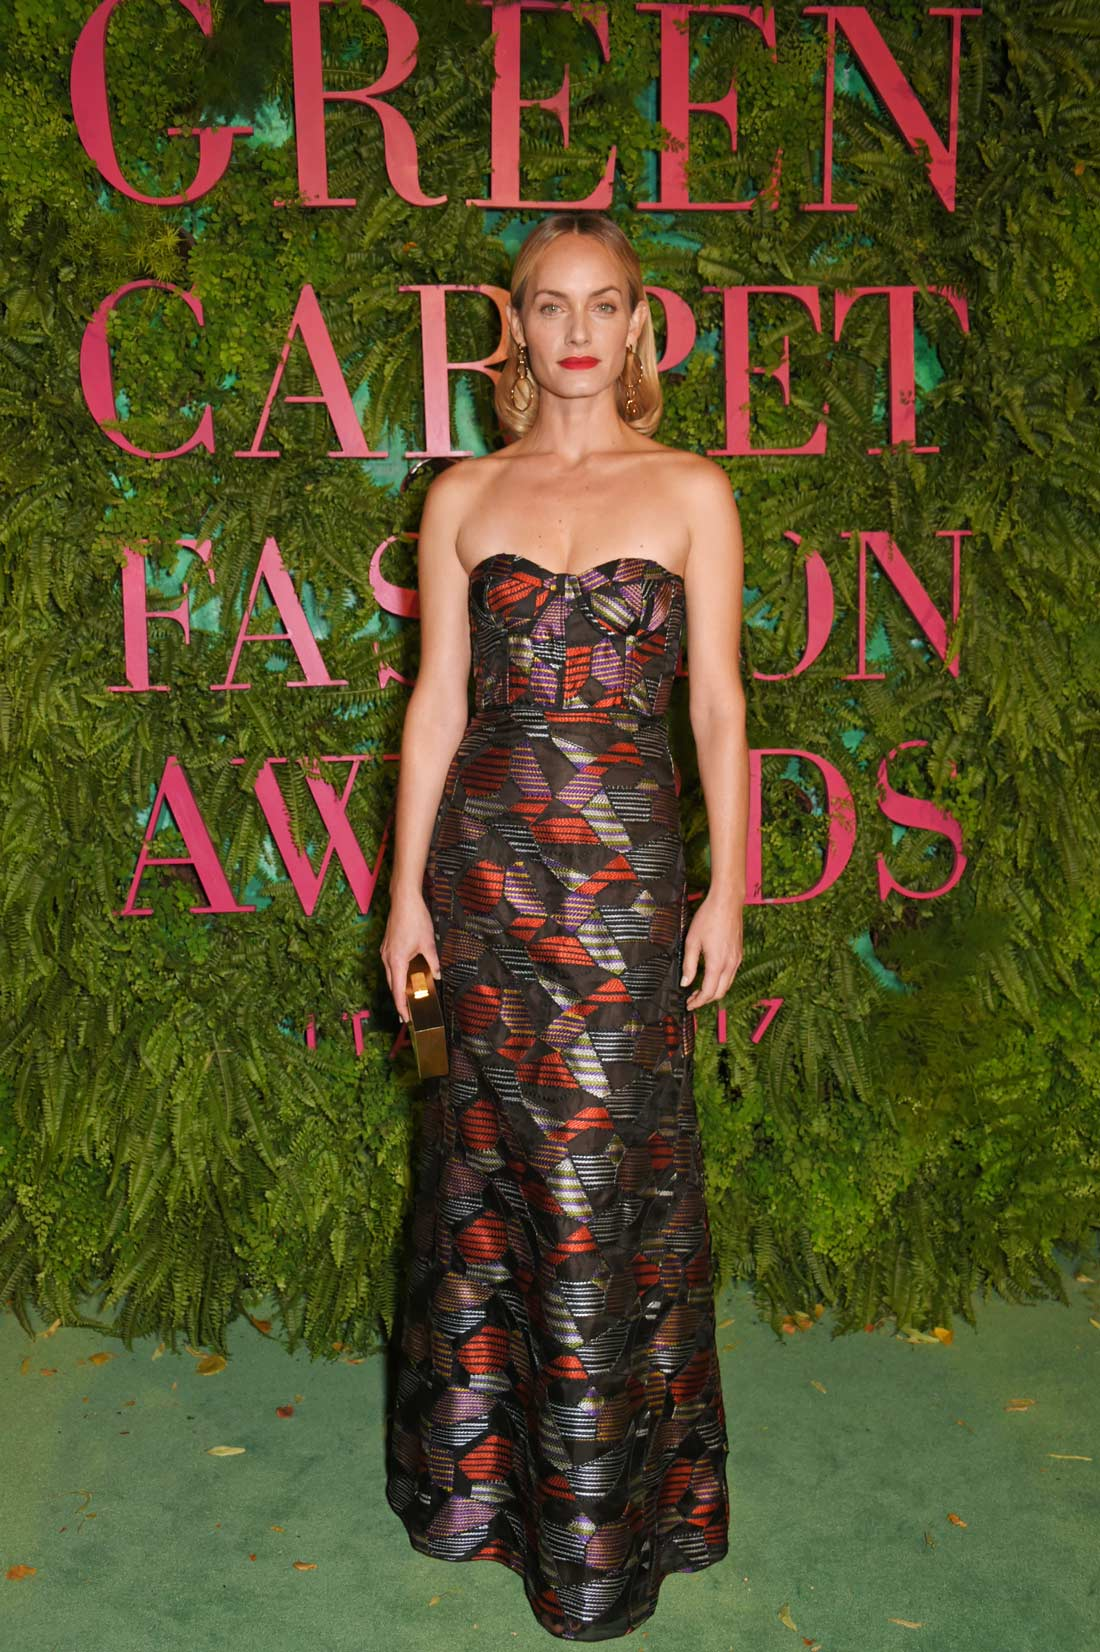 Green Carpet Fashion Awards Milano 2017 - Amber Valletta - Hair Massimo Serini